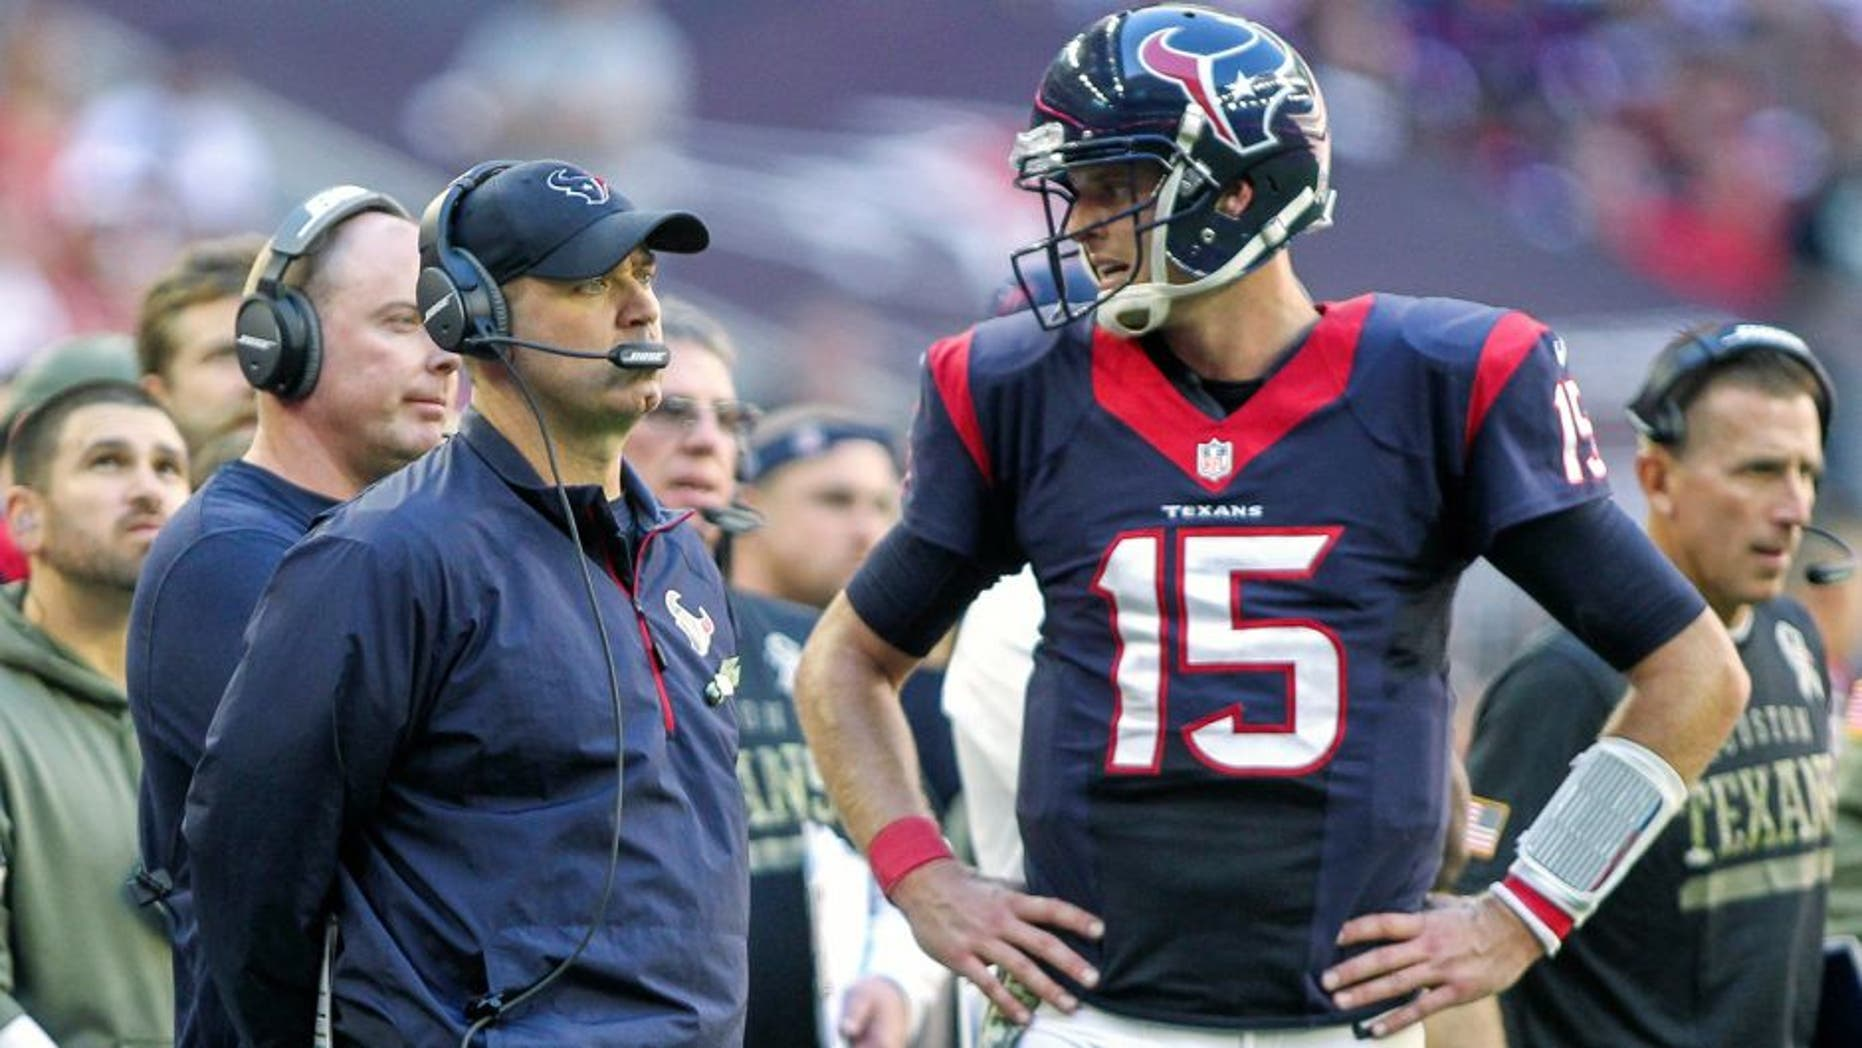 Nov 23, 2014; Houston, TX, USA; Houston Texans head coach Bill O'Brien and quarterback Ryan Mallett (15) on the sideline during the third quarter against the Cincinnati Bengals at NRG Stadium. The Bengals defeated the Texans 22-13. Mandatory Credit: Troy Taormina-USA TODAY Sports